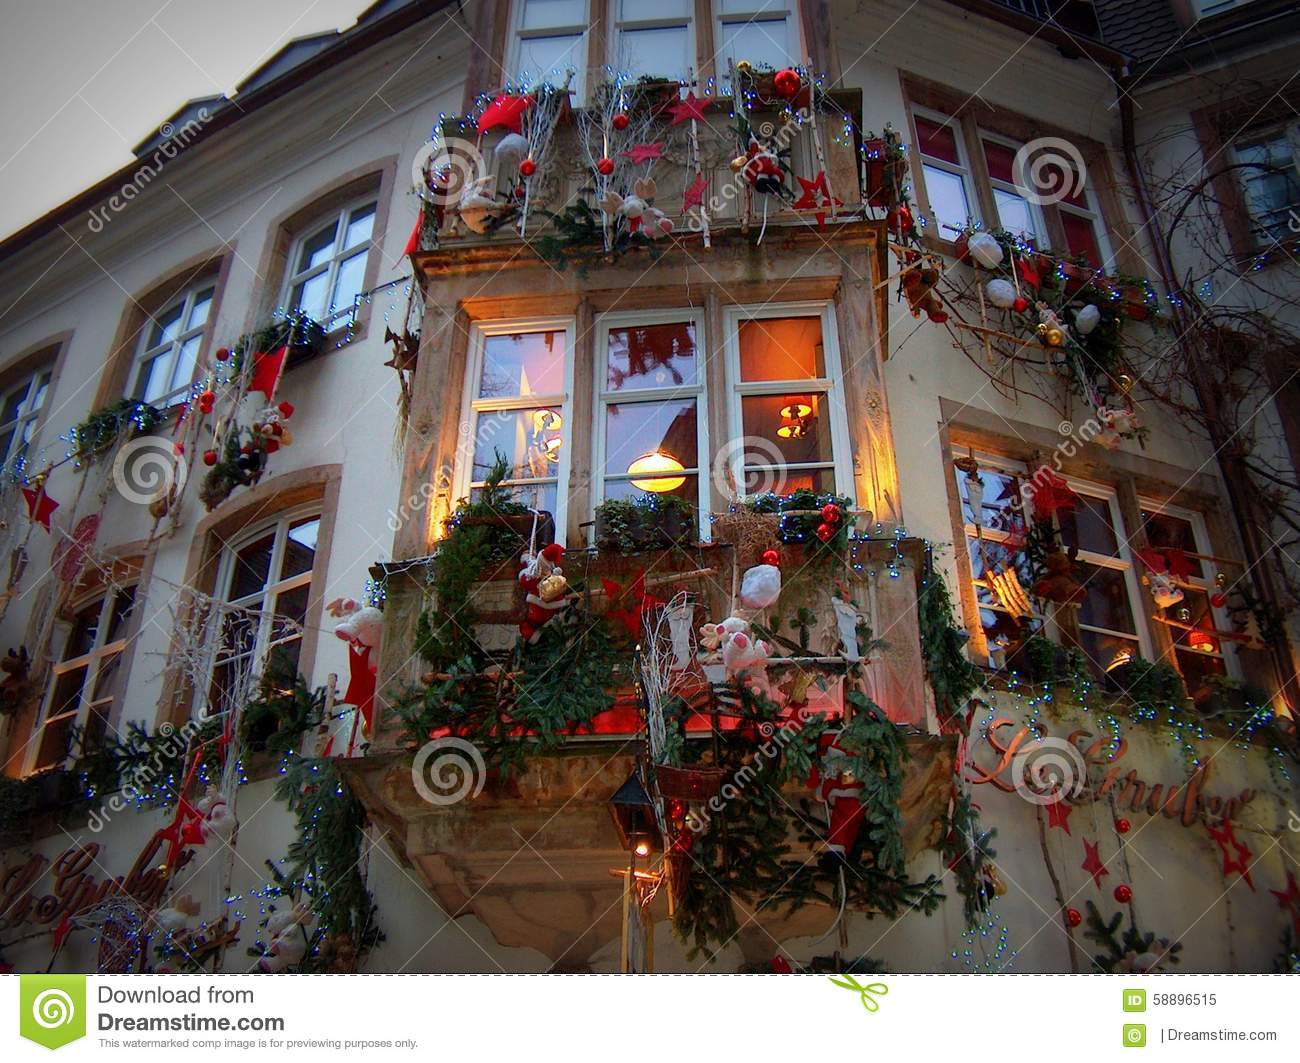 christmas facade strasbourg stock image image of strasbourg advent 58896515. Black Bedroom Furniture Sets. Home Design Ideas